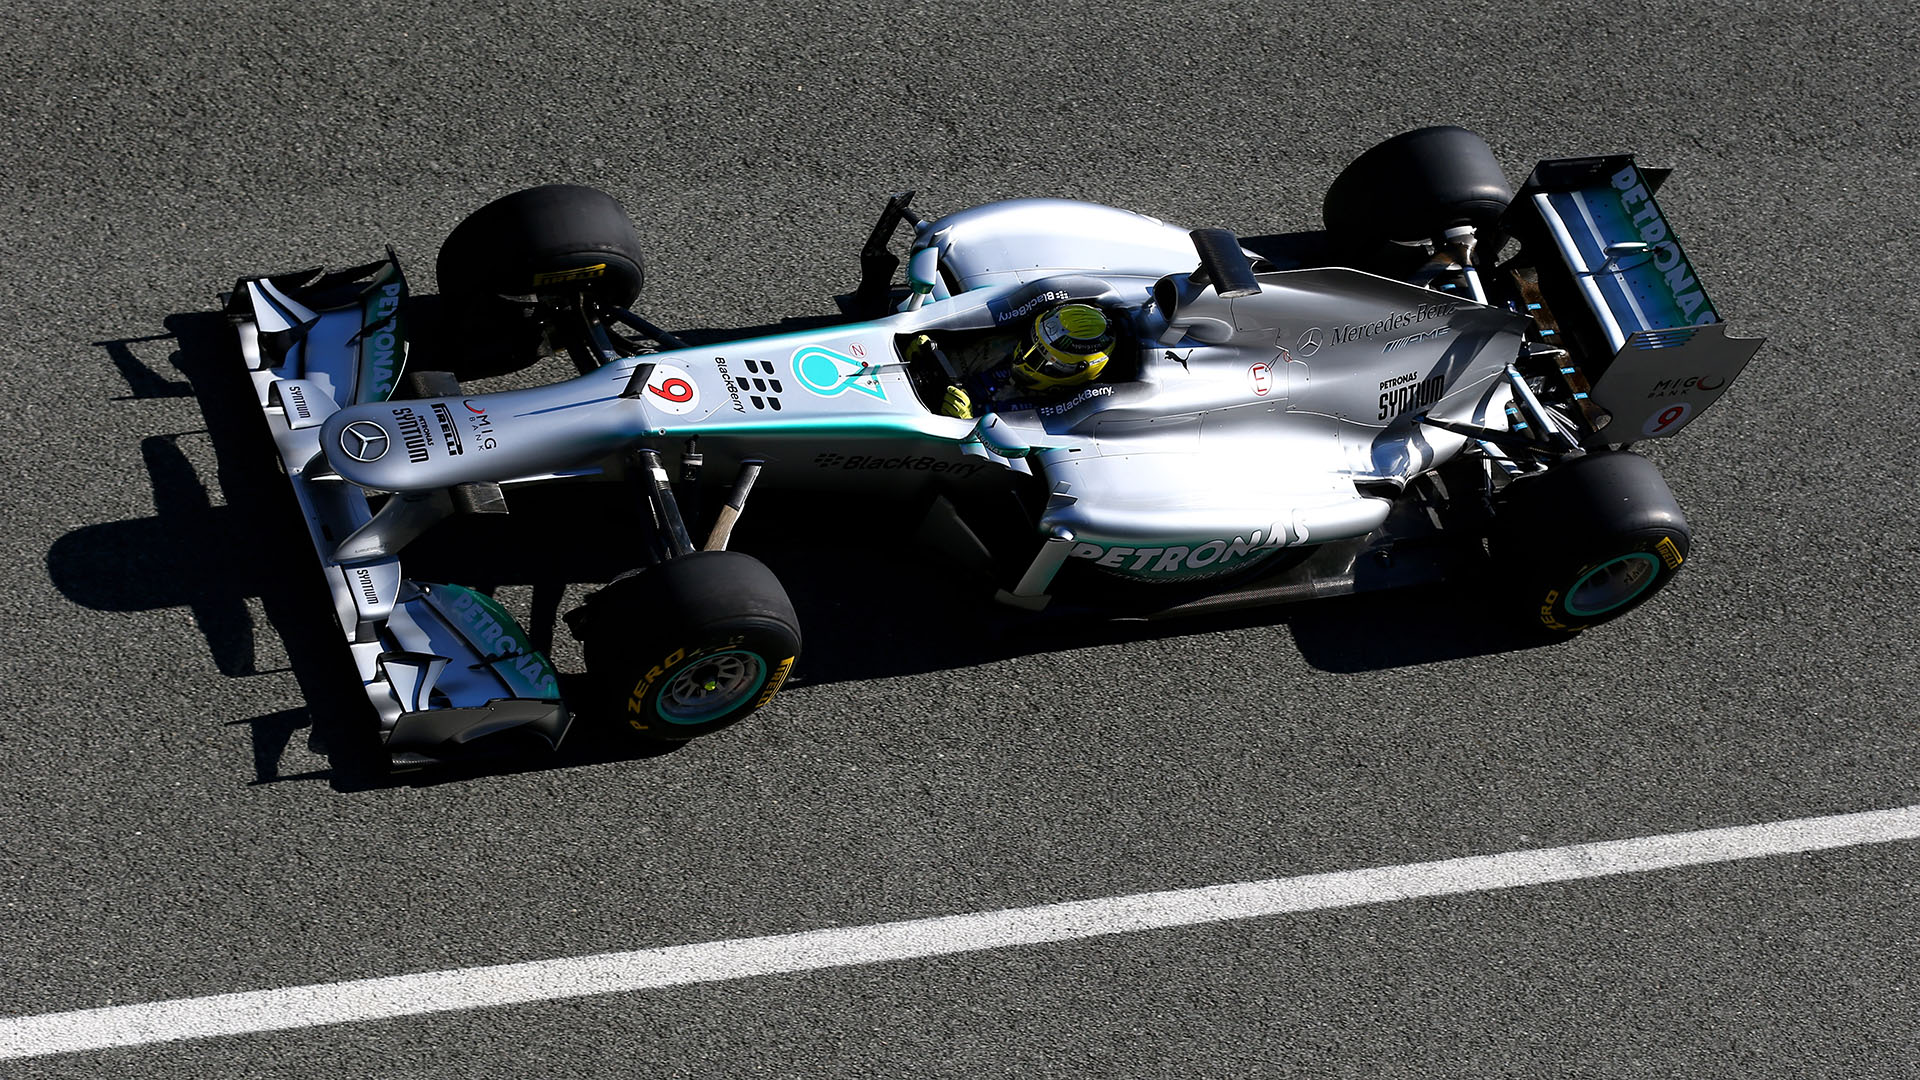 Mercedes W04 Formula 1 Car Showcased At Jerez Autoevolution